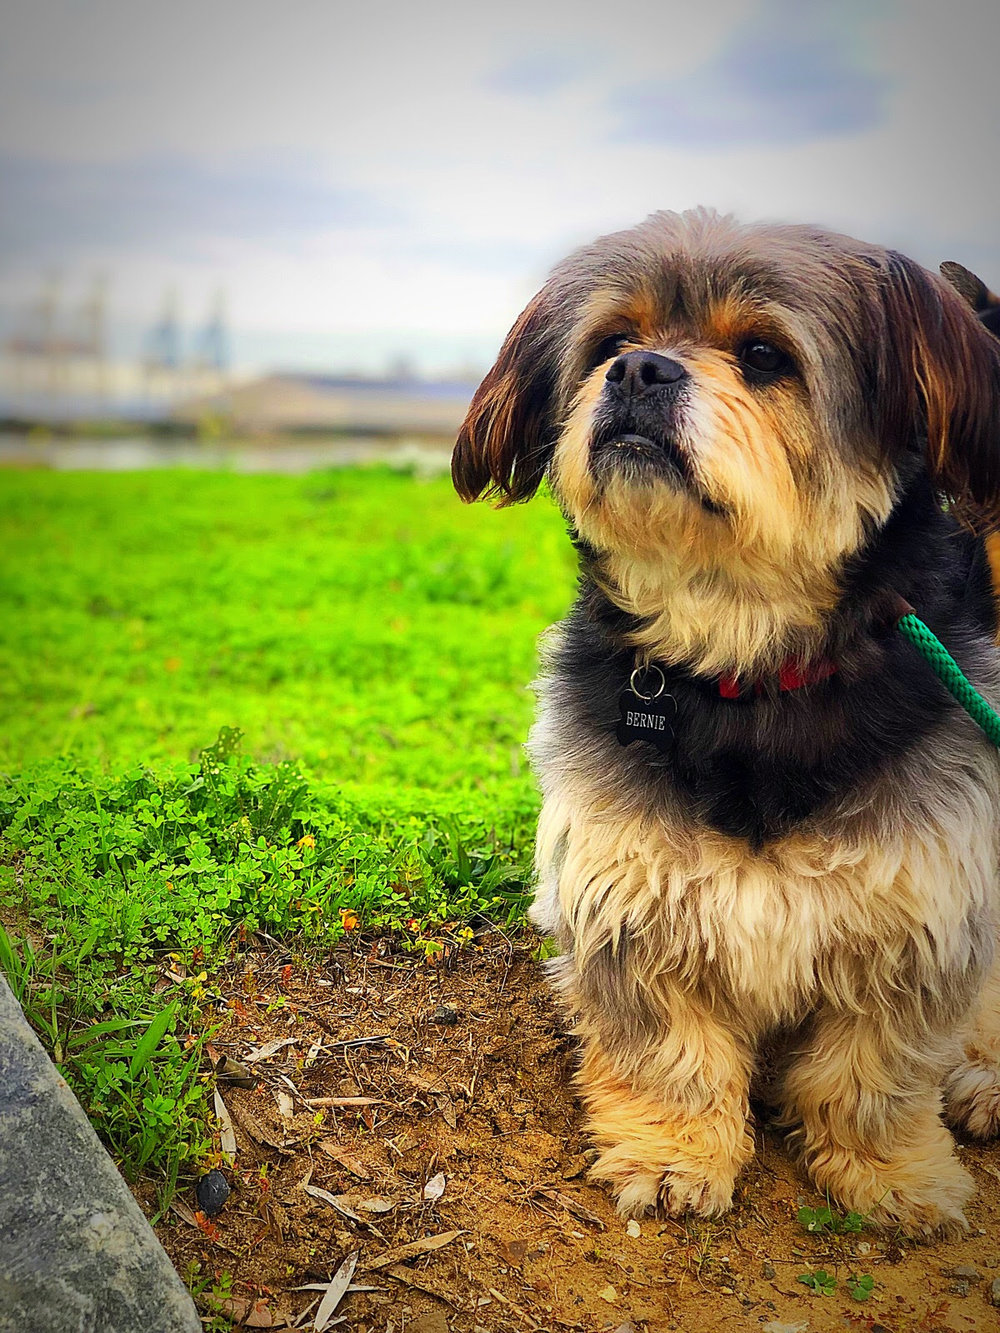 BERNIE - BREED: Shih Tzu / Pekingese / etc. | RESCUEDIG: @bernie_bear_pupLOVES: sleeping, sniffing, lallygaggingHATES: skateboards